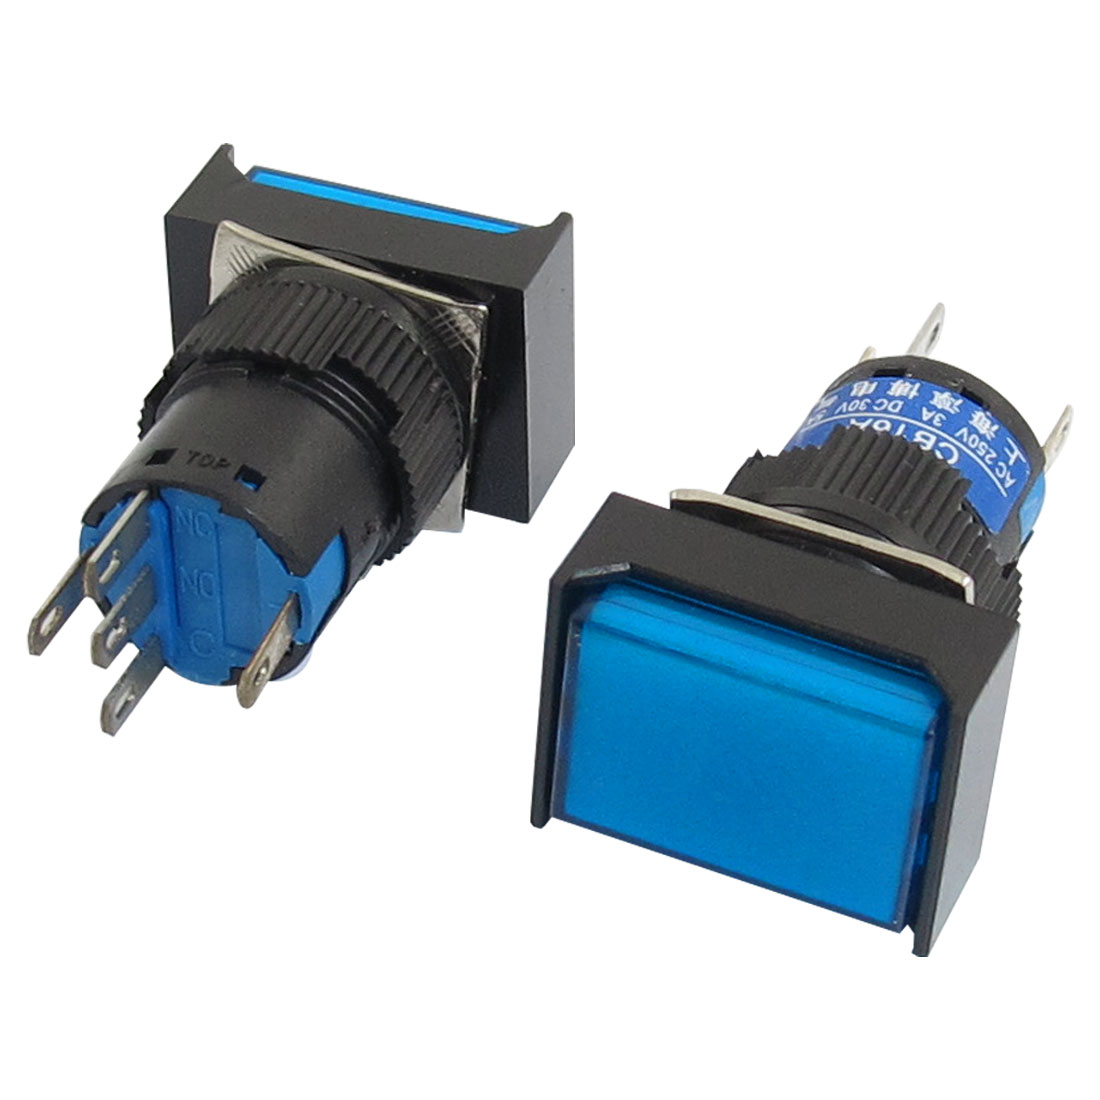 DC24V Lamp 1NO 1NC Momentary Blue Cap Rectangular Push Button Switch 2Pcs